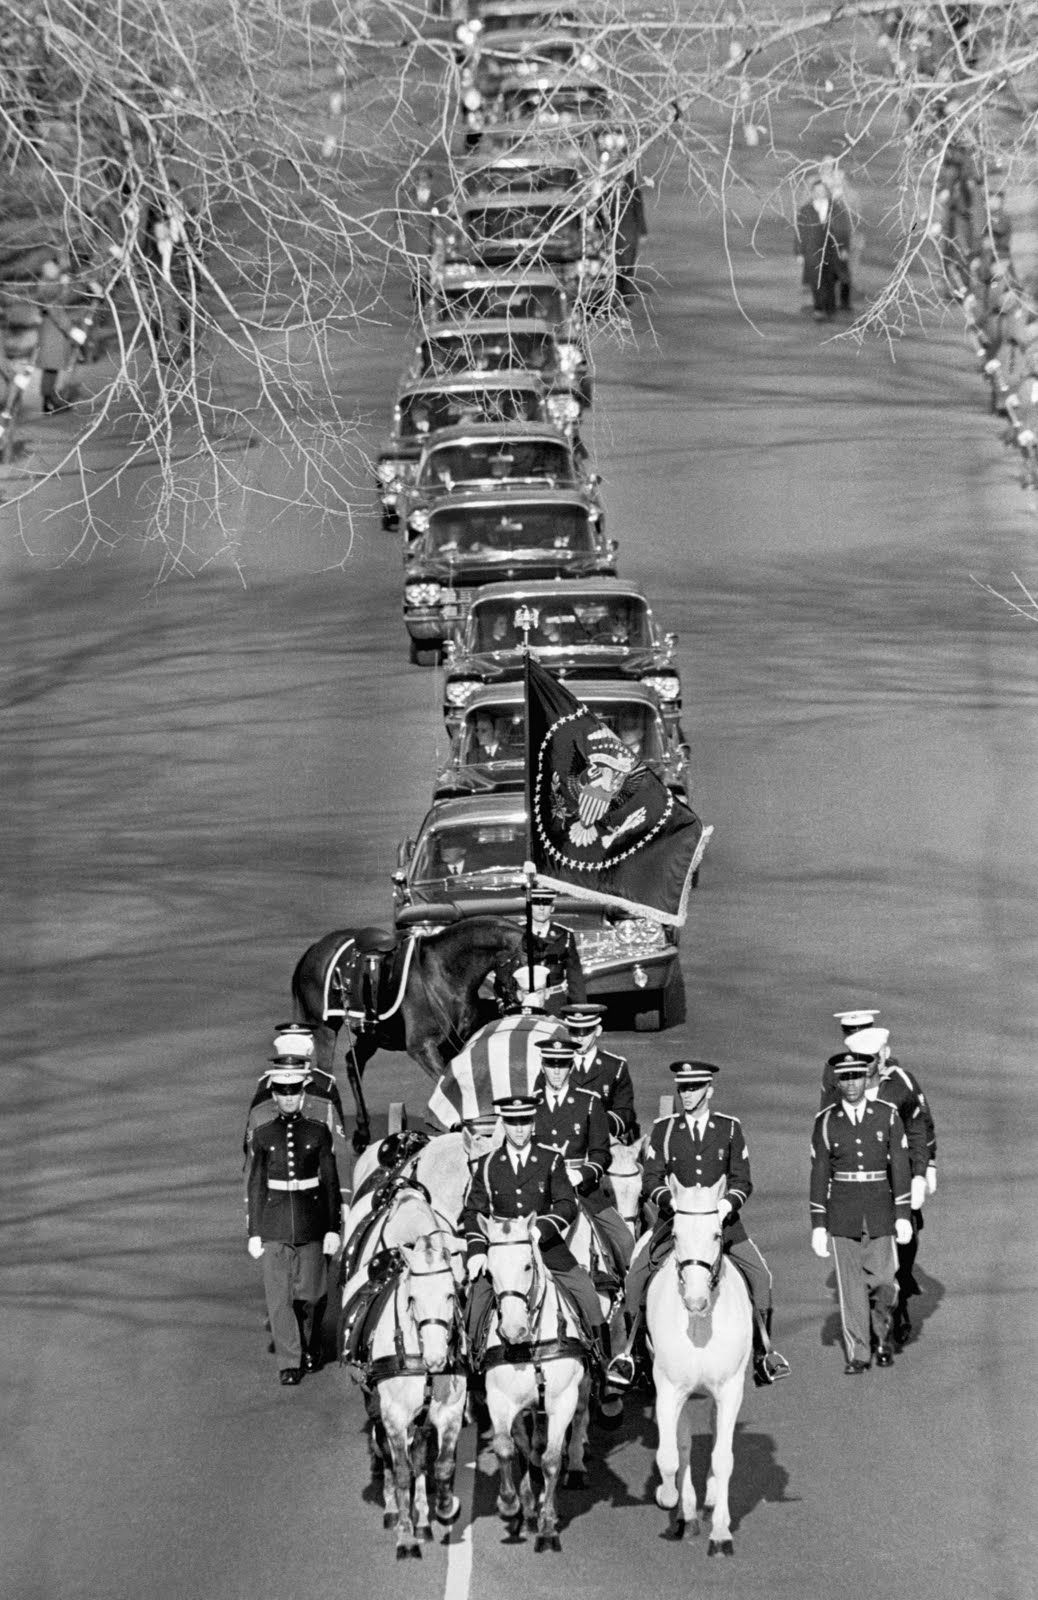 Funeral of President John F. Kennedy, Nov 25, 1963. To pay respect, 800,000 lined streets to watch coffin's procession. Images of caparisoned horse, remain emblazoned in memory - riderless horse with boots facing backwards in the saddle.